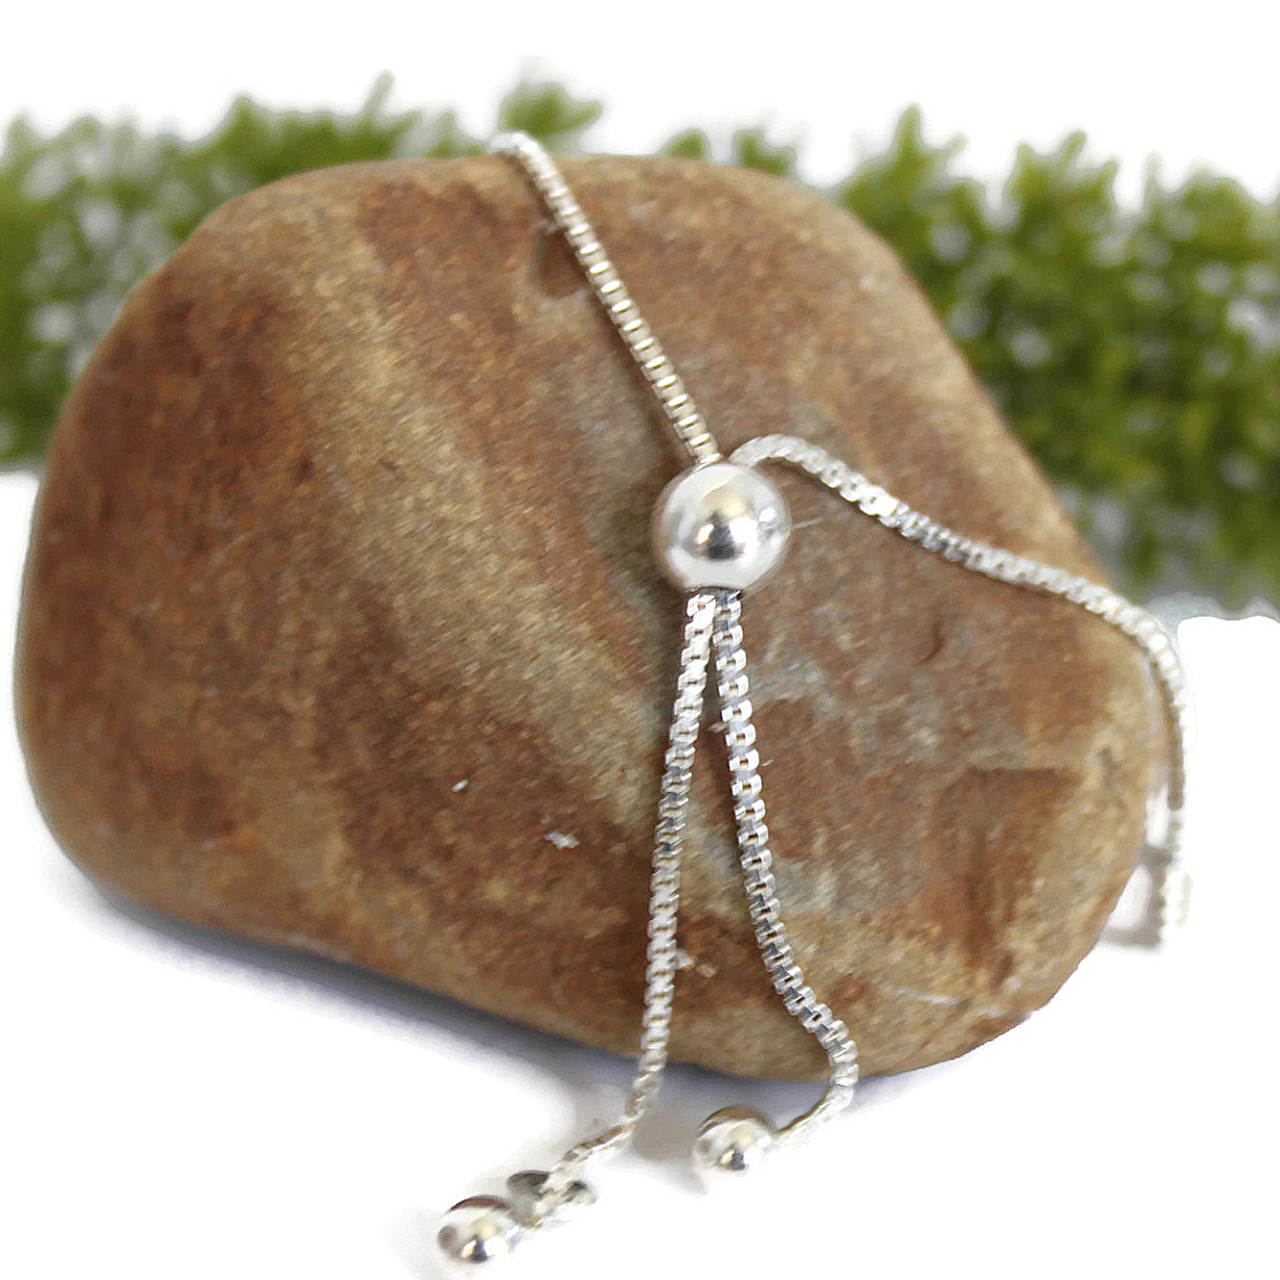 Backside Sterling Chain Bracelet on Rock with Green Plant